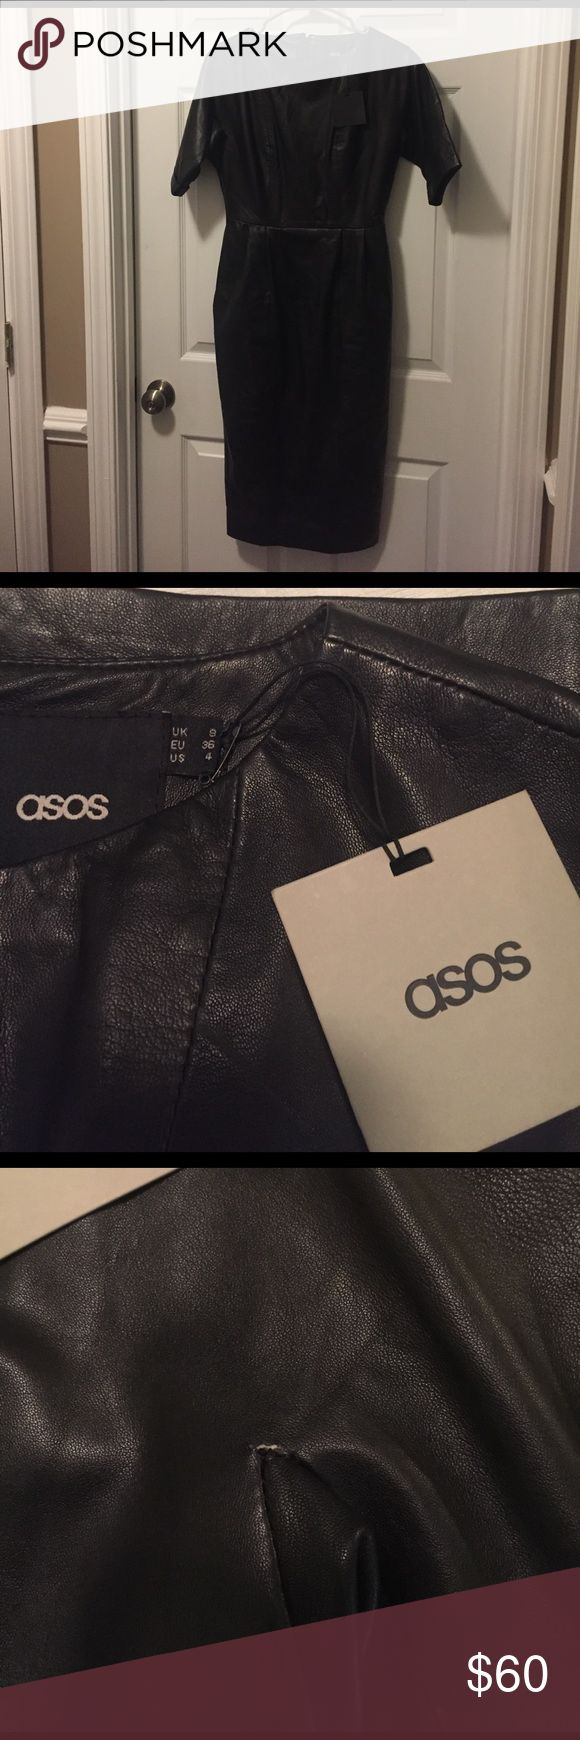 ASOS Leather Wiggle Dress Chic ASOS Leather Wiggle Dress! Has A Small Snag On The Left Arm Pit Area (Please See The Pic). Seller Does Not Accept Returns ASOS Dresses Midi